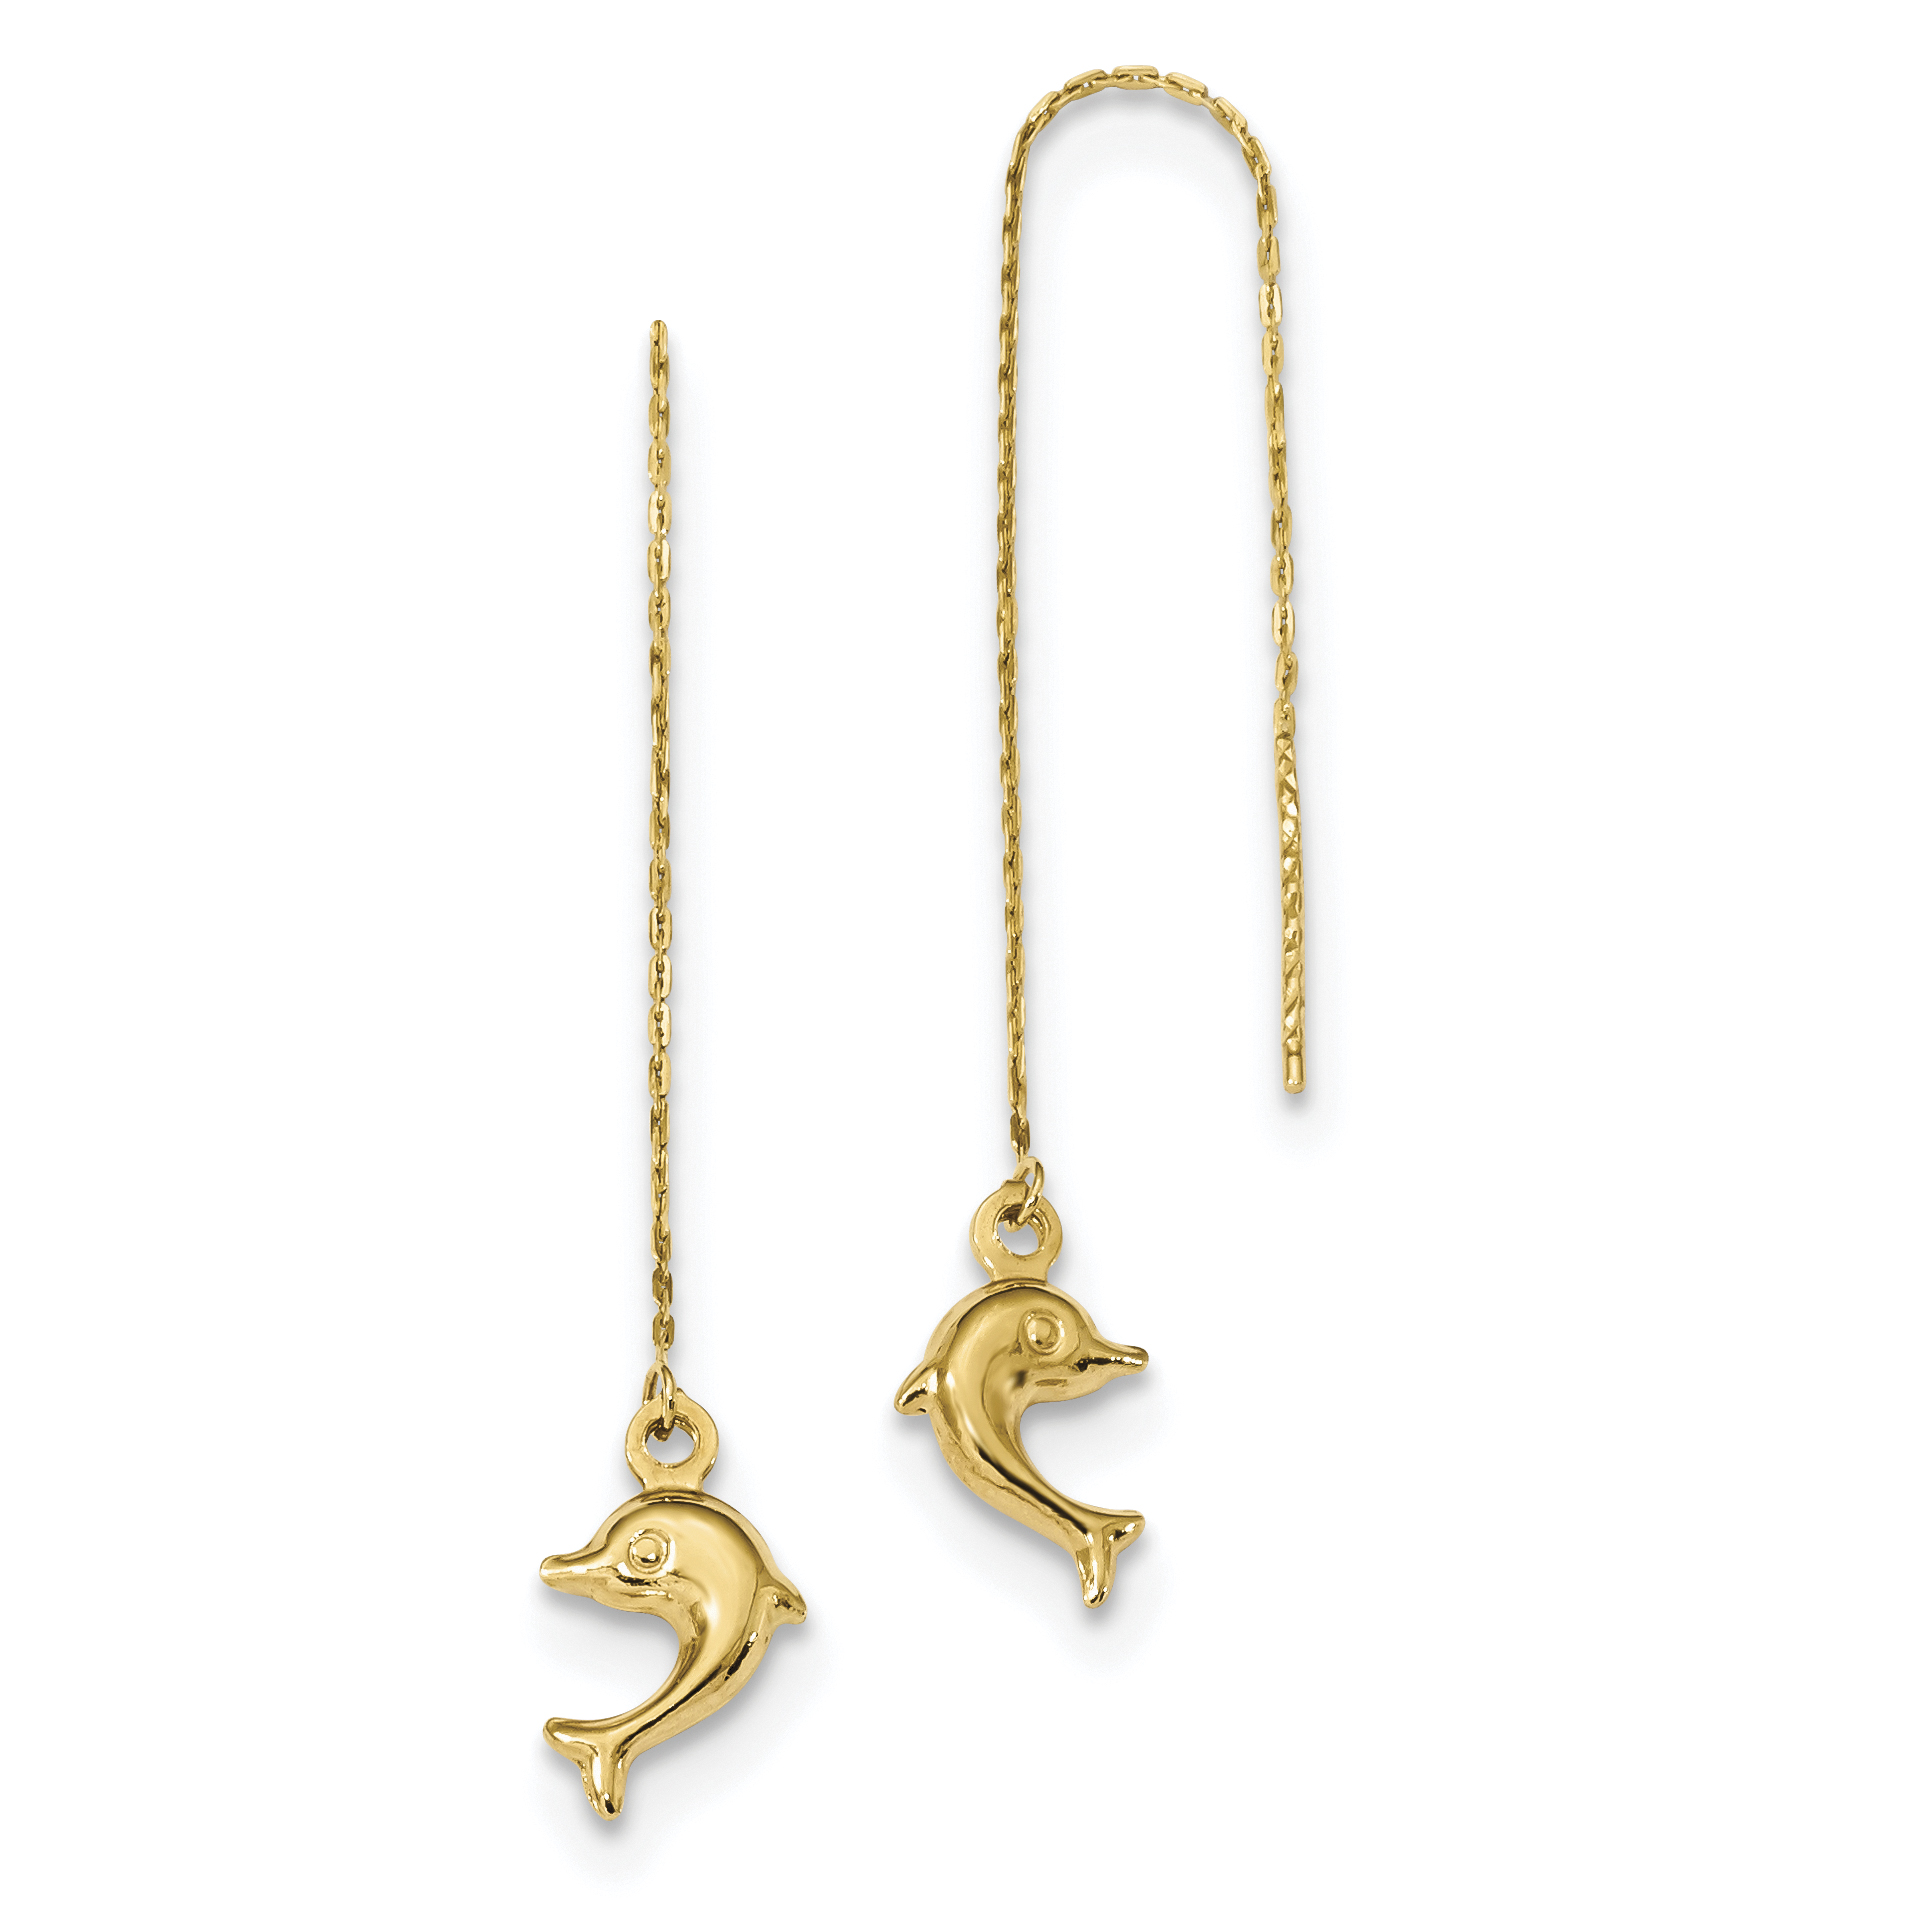 14k Polished Dolphins Threader Earrings TC997 - image 2 of 2